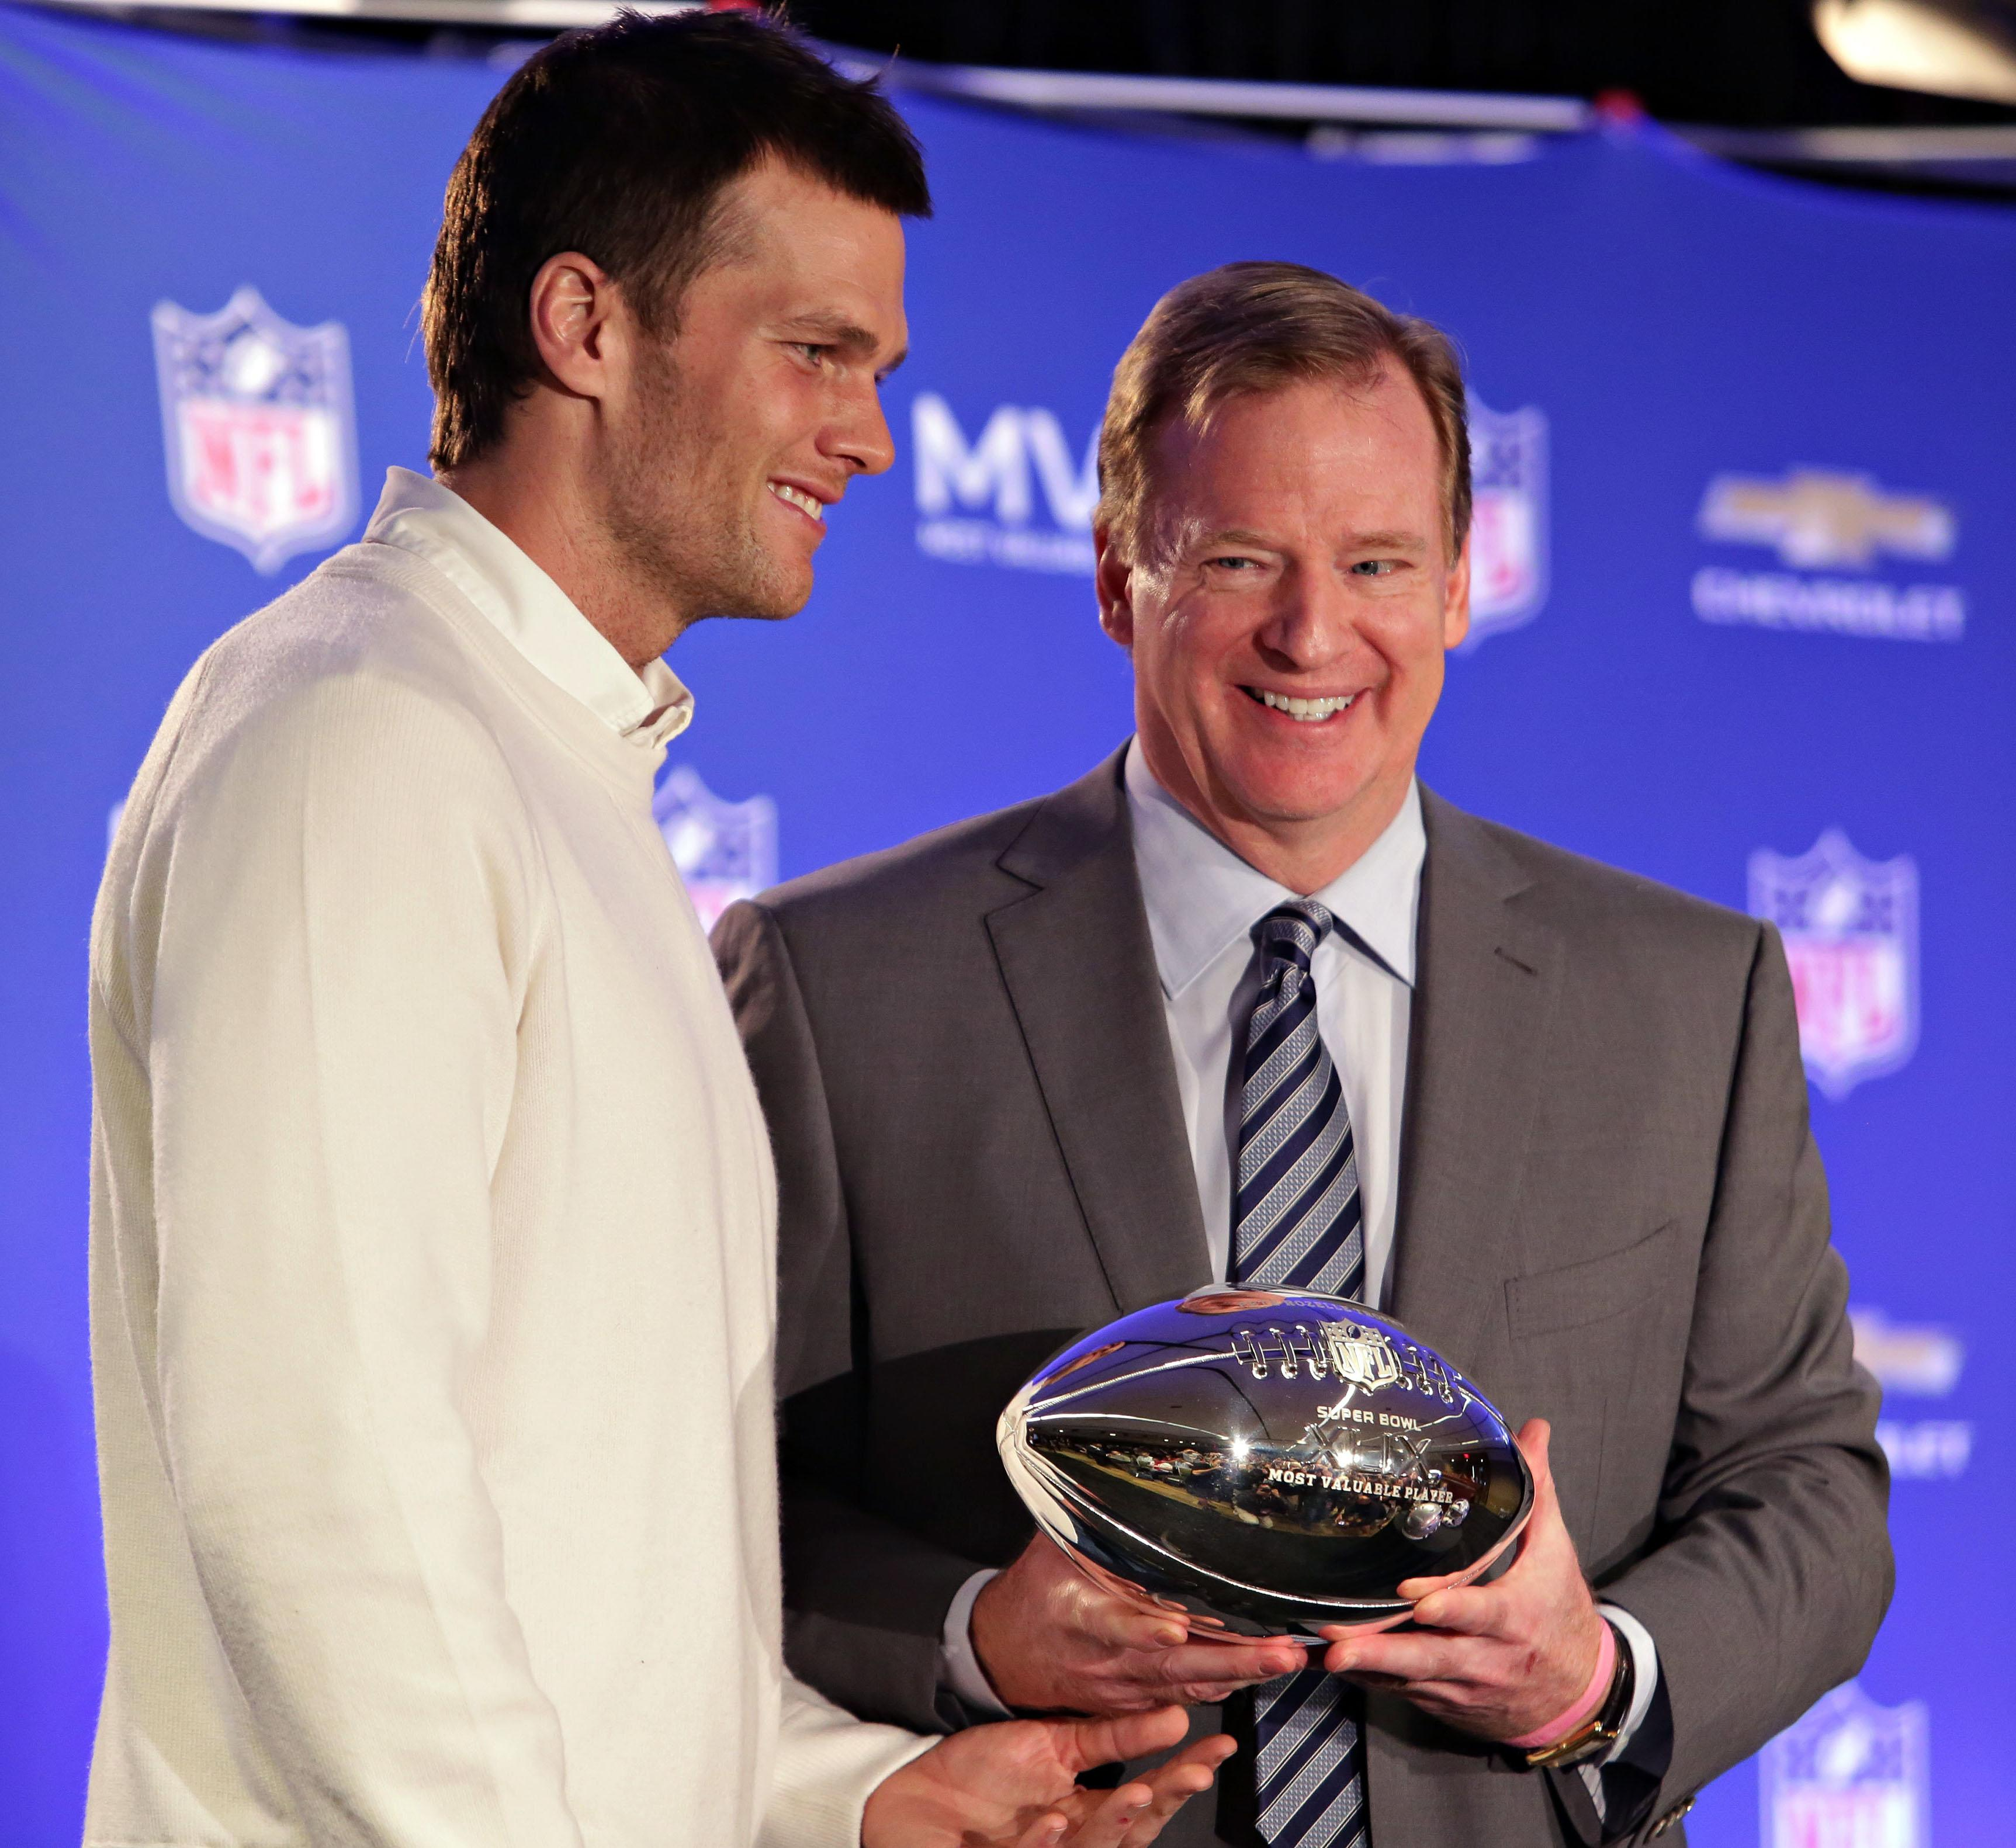 Goodell makes it official: He will hear Brady's appeal